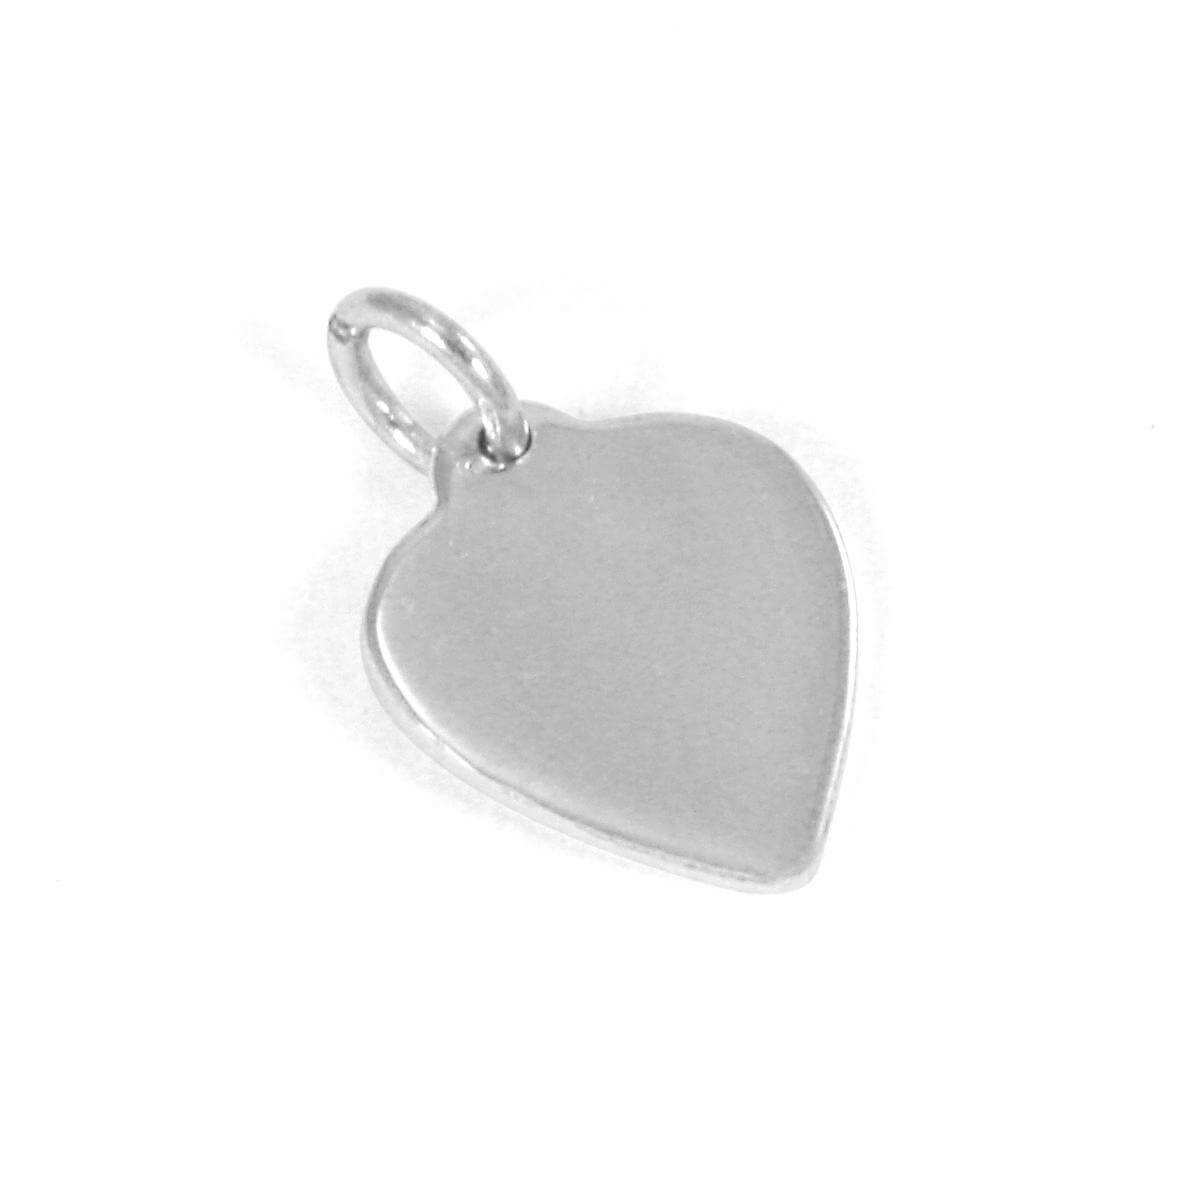 9ct White Gold Small Engravable Heart Pendant